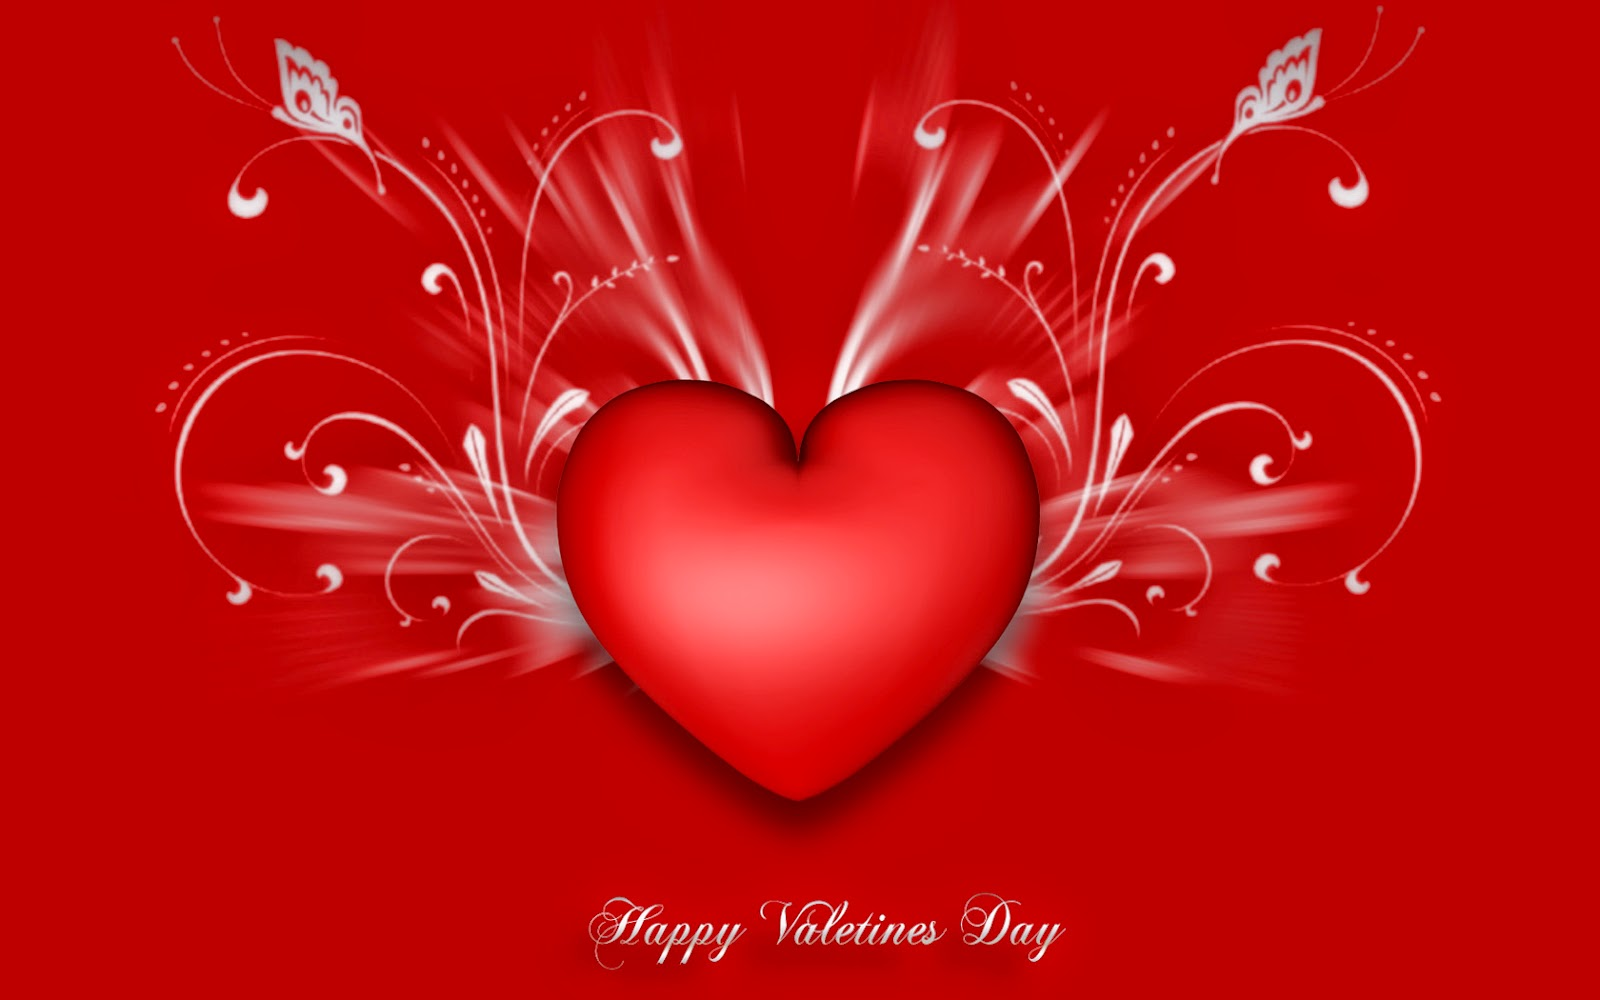 Happy Valentines Day Images for *Whatsapp* & Facebook Wechat Line Messenger